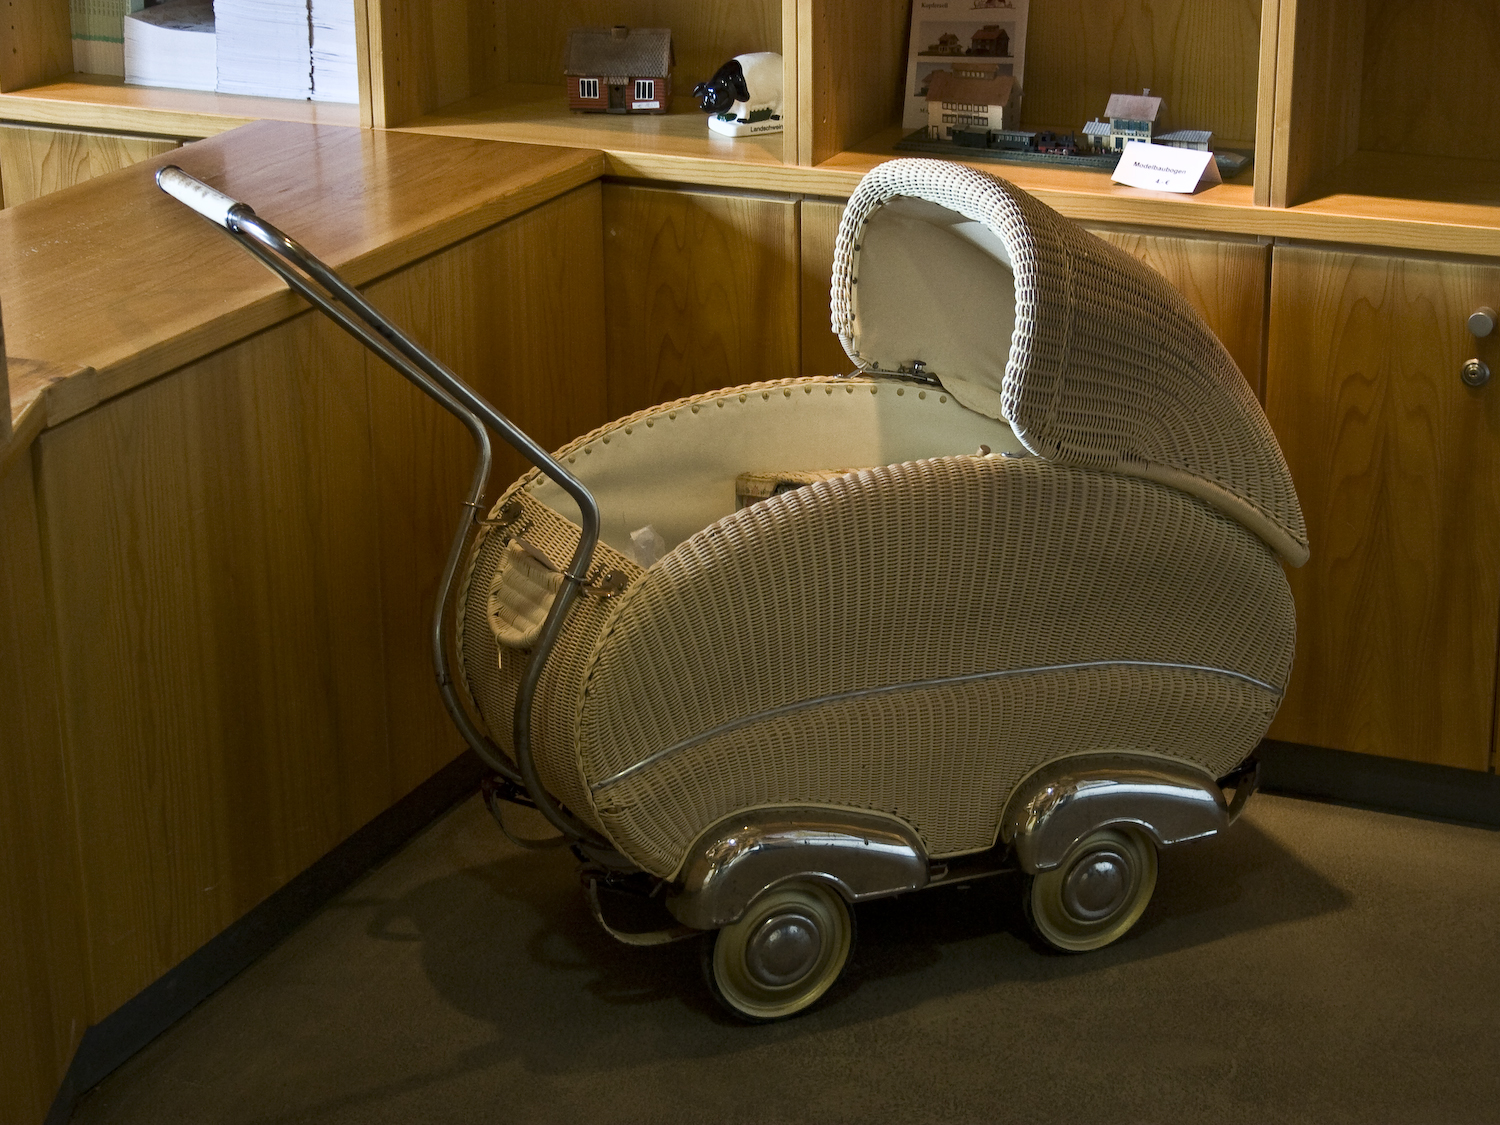 540a82a9867 Baby transport - Wikipedia